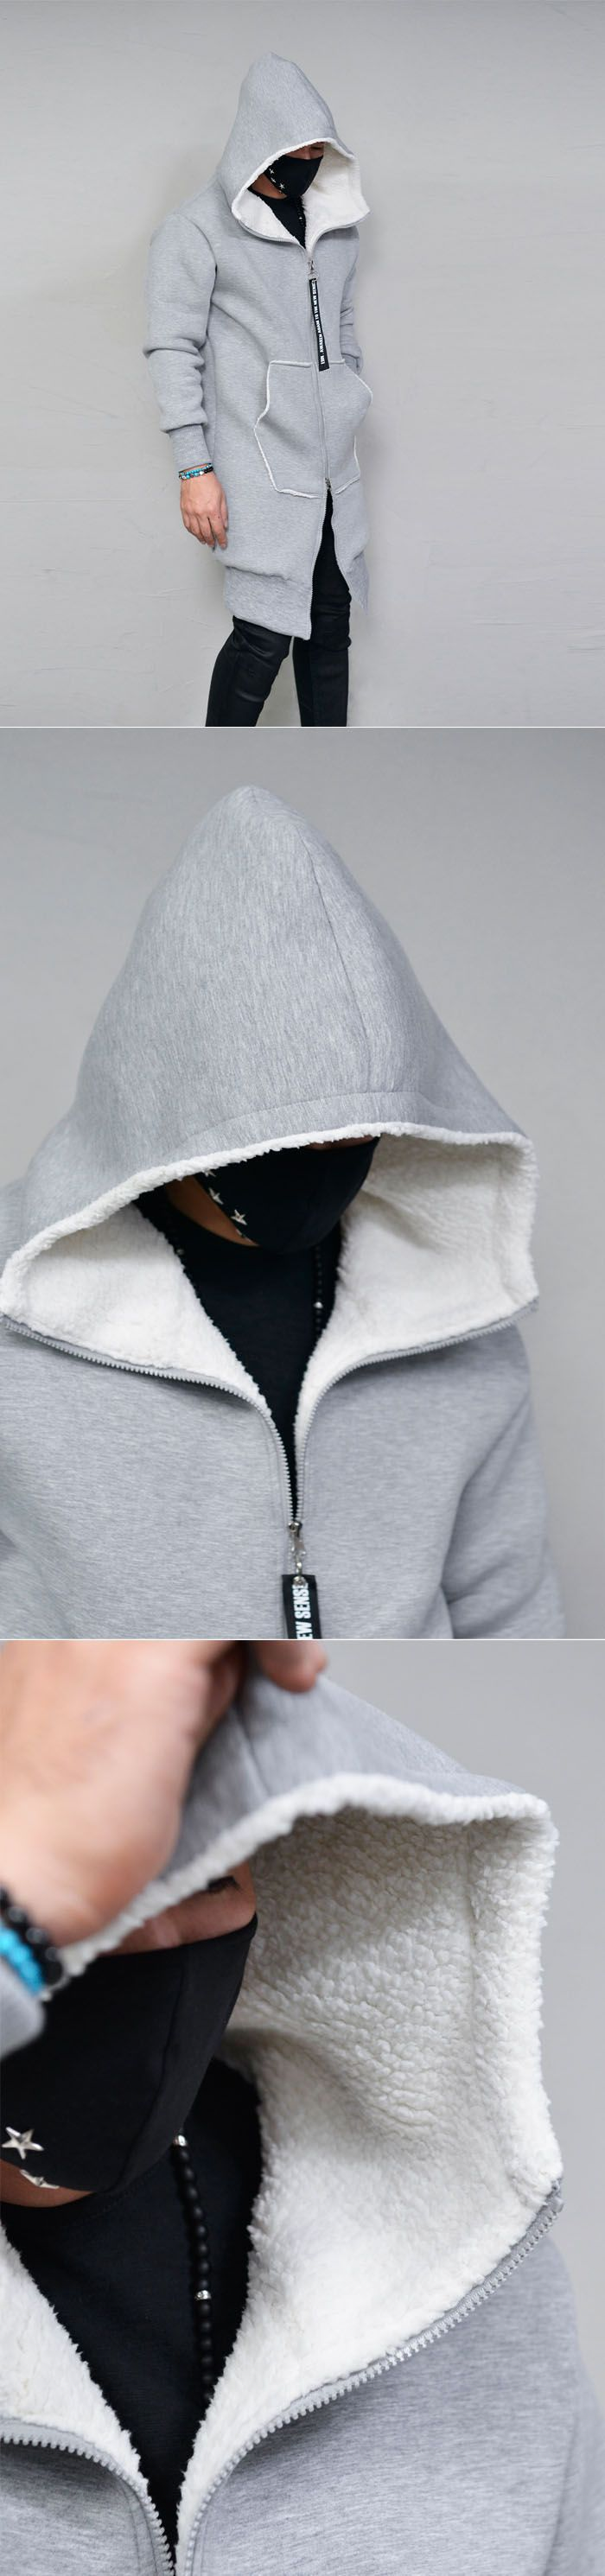 Full Shearling Long Neoprene Hood-Jacket 282 by Guylook.com  Top quality neoprene shell with thick & warm fulll faux shearling lining Generously sized to flatter most any body shape Big hood & edge print taping accent on the zip